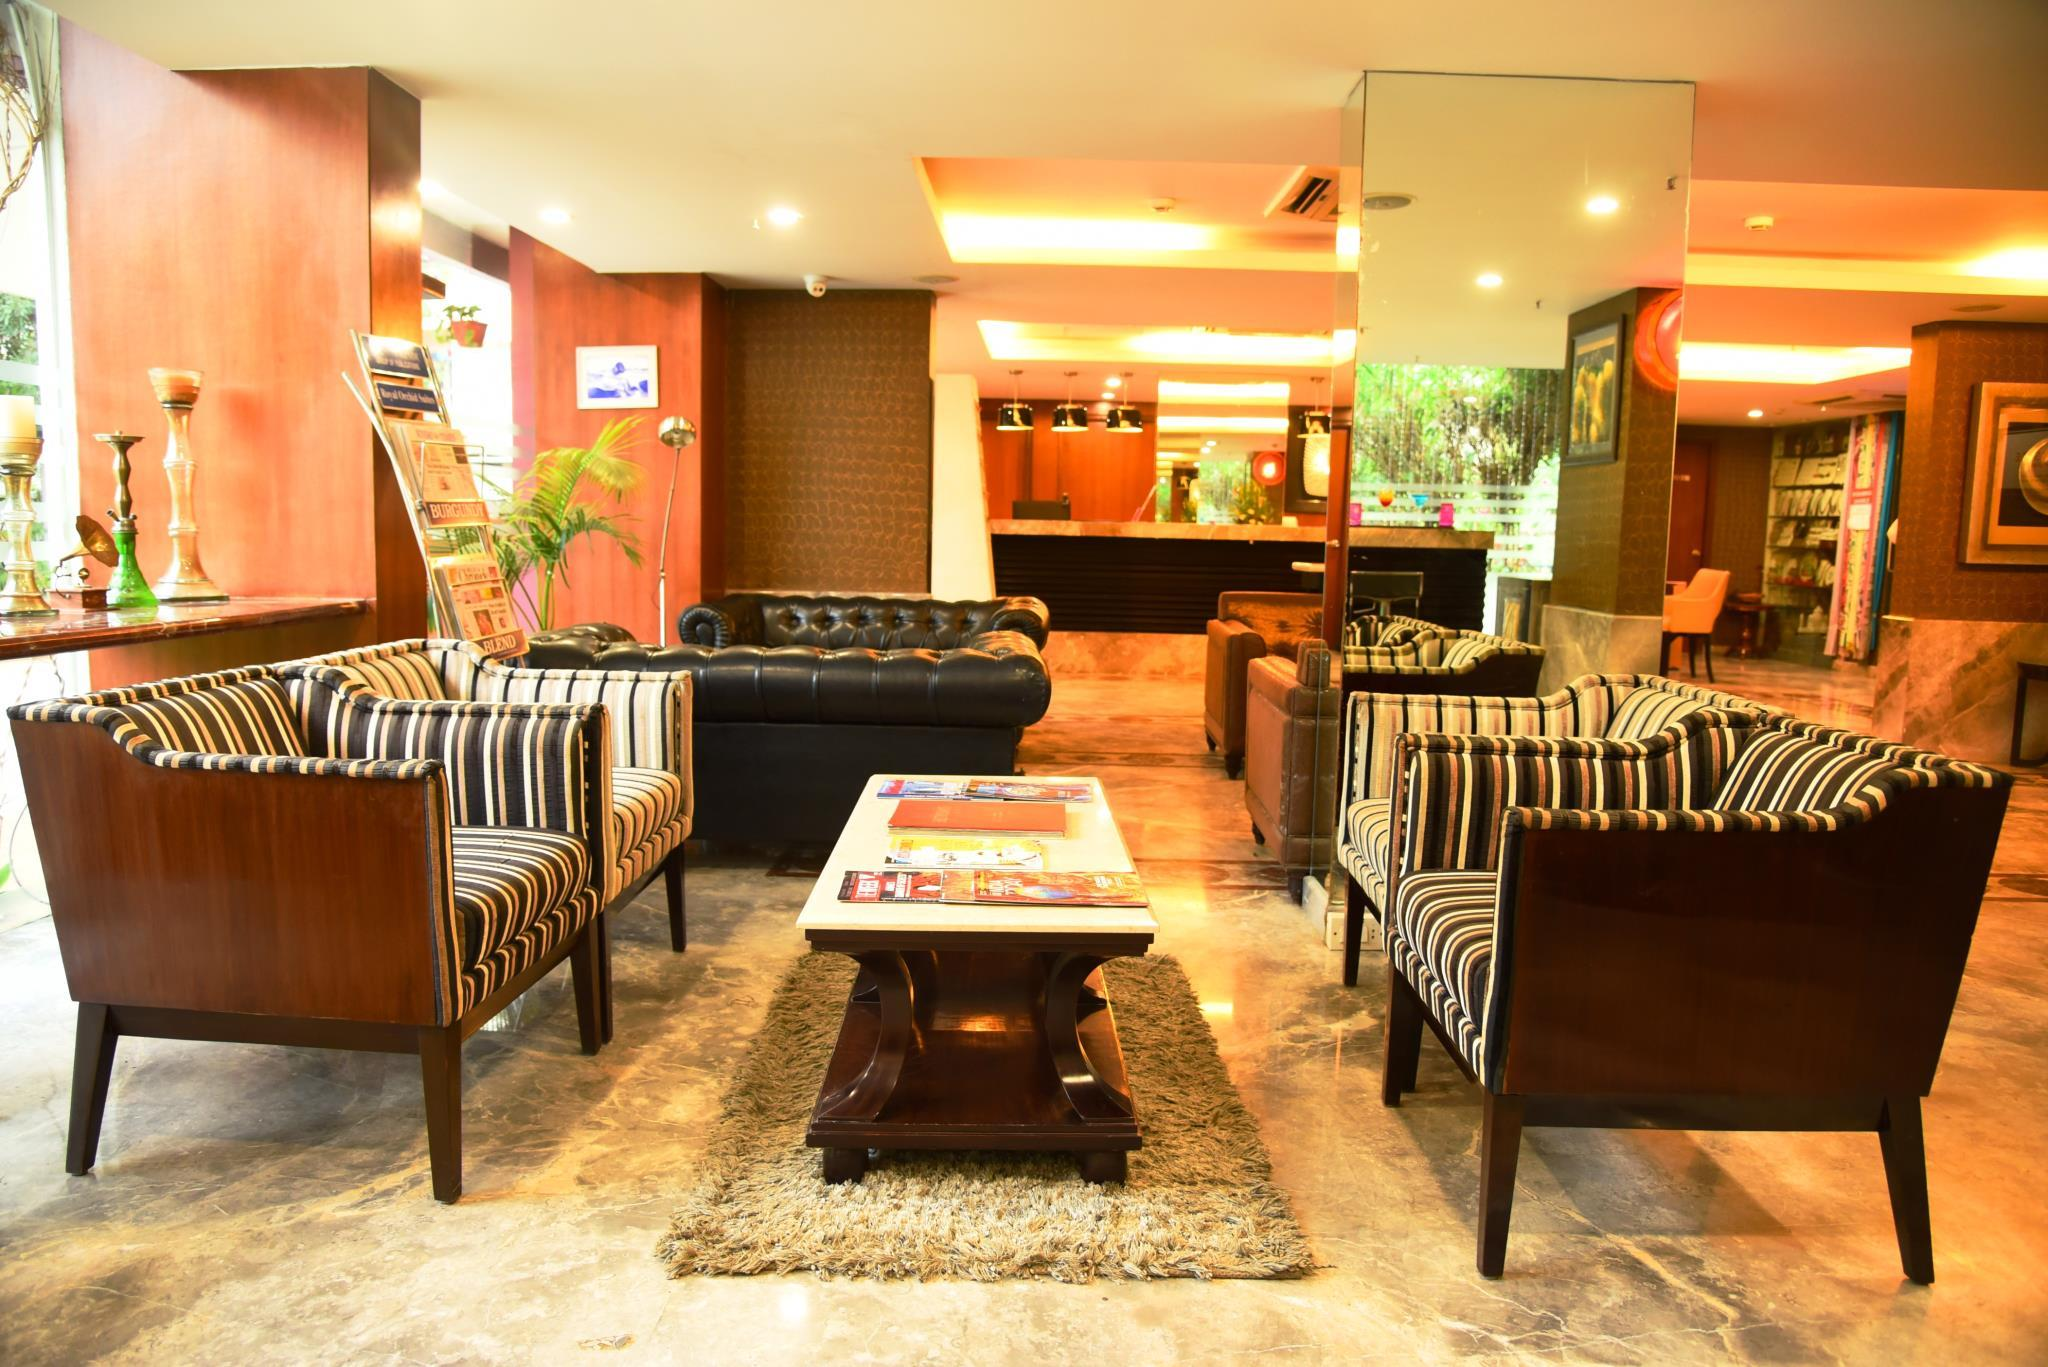 Royal Orchid Suites Whitefield Bangalore Hotel, Bangalore